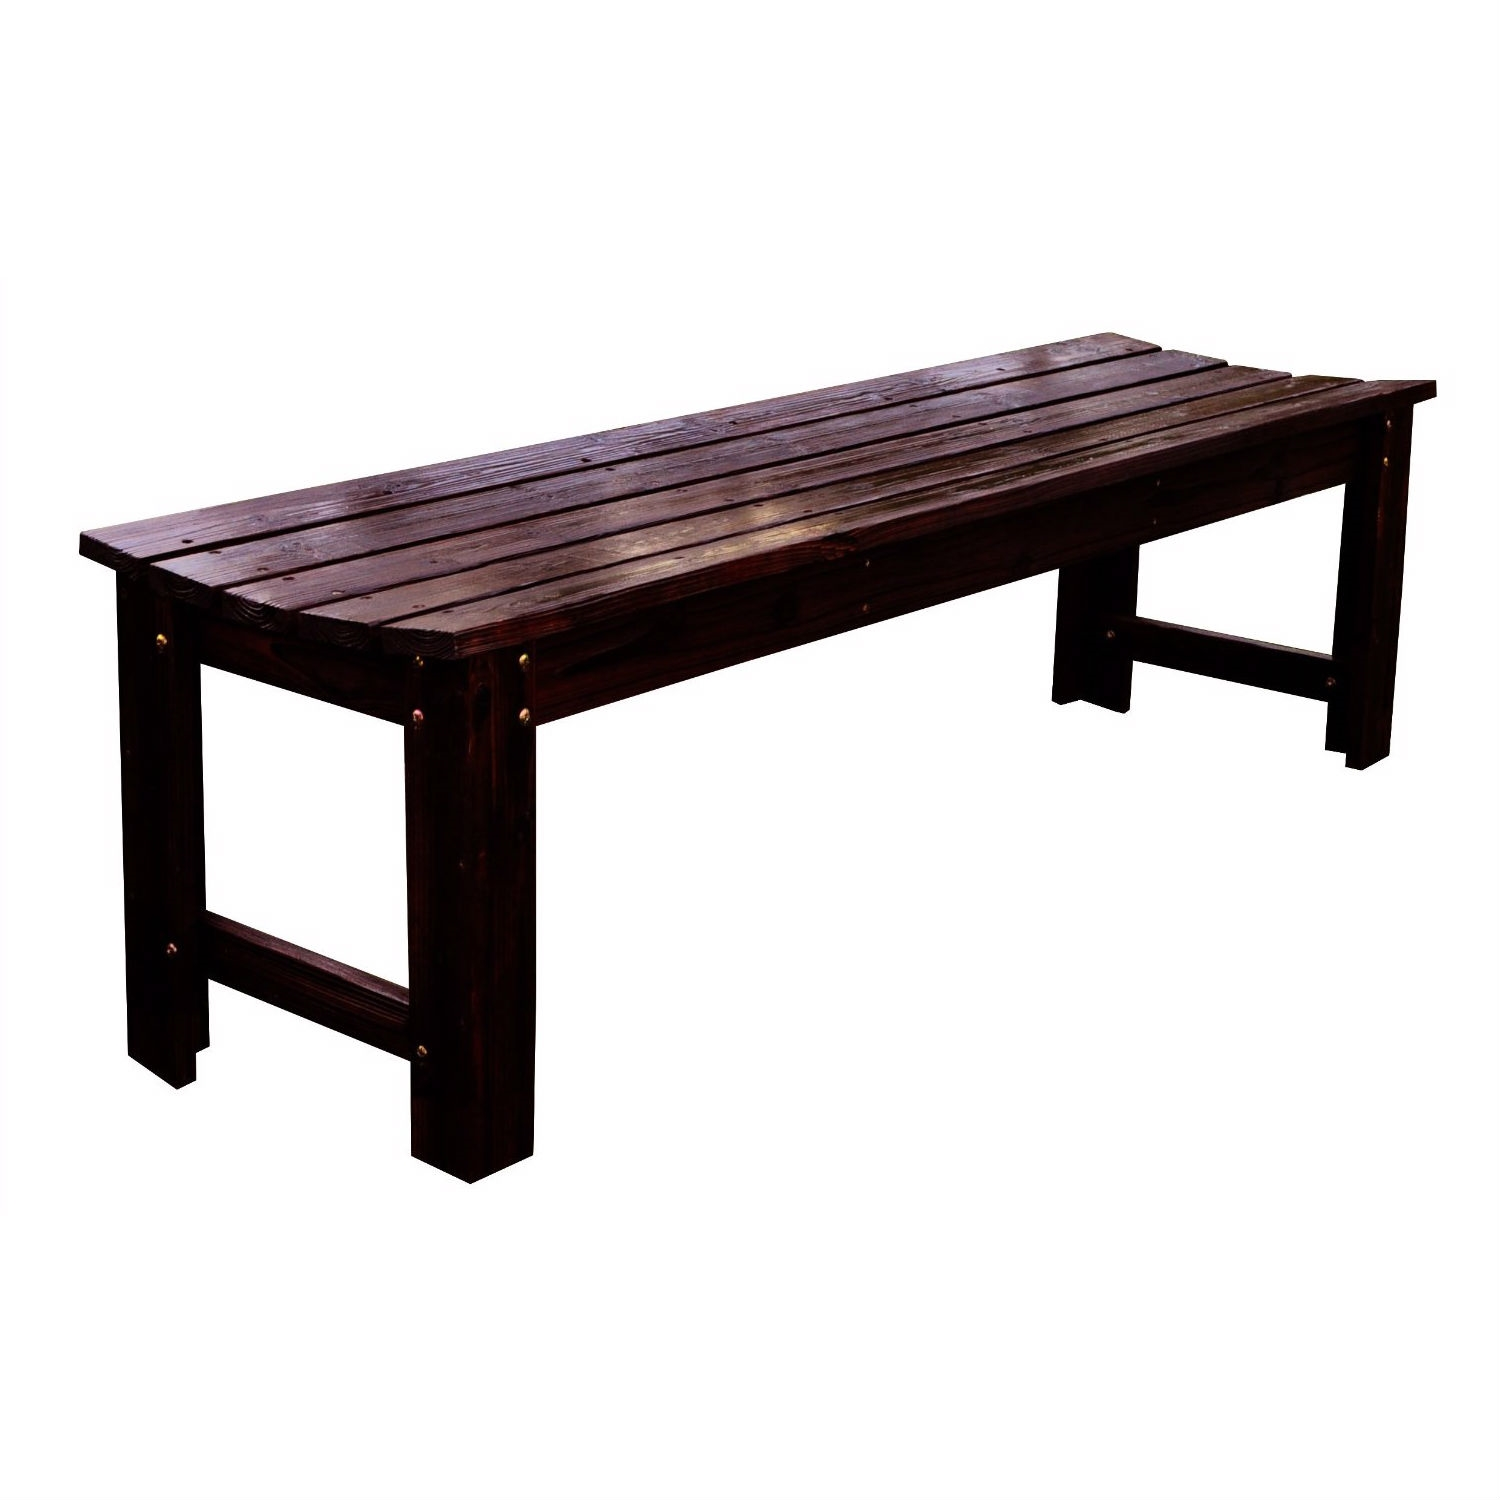 Picture of: 5 Feet Backless Outdoor Garden Patio Cedar Wood Bench In Burn Brown Fastfurnishings Com